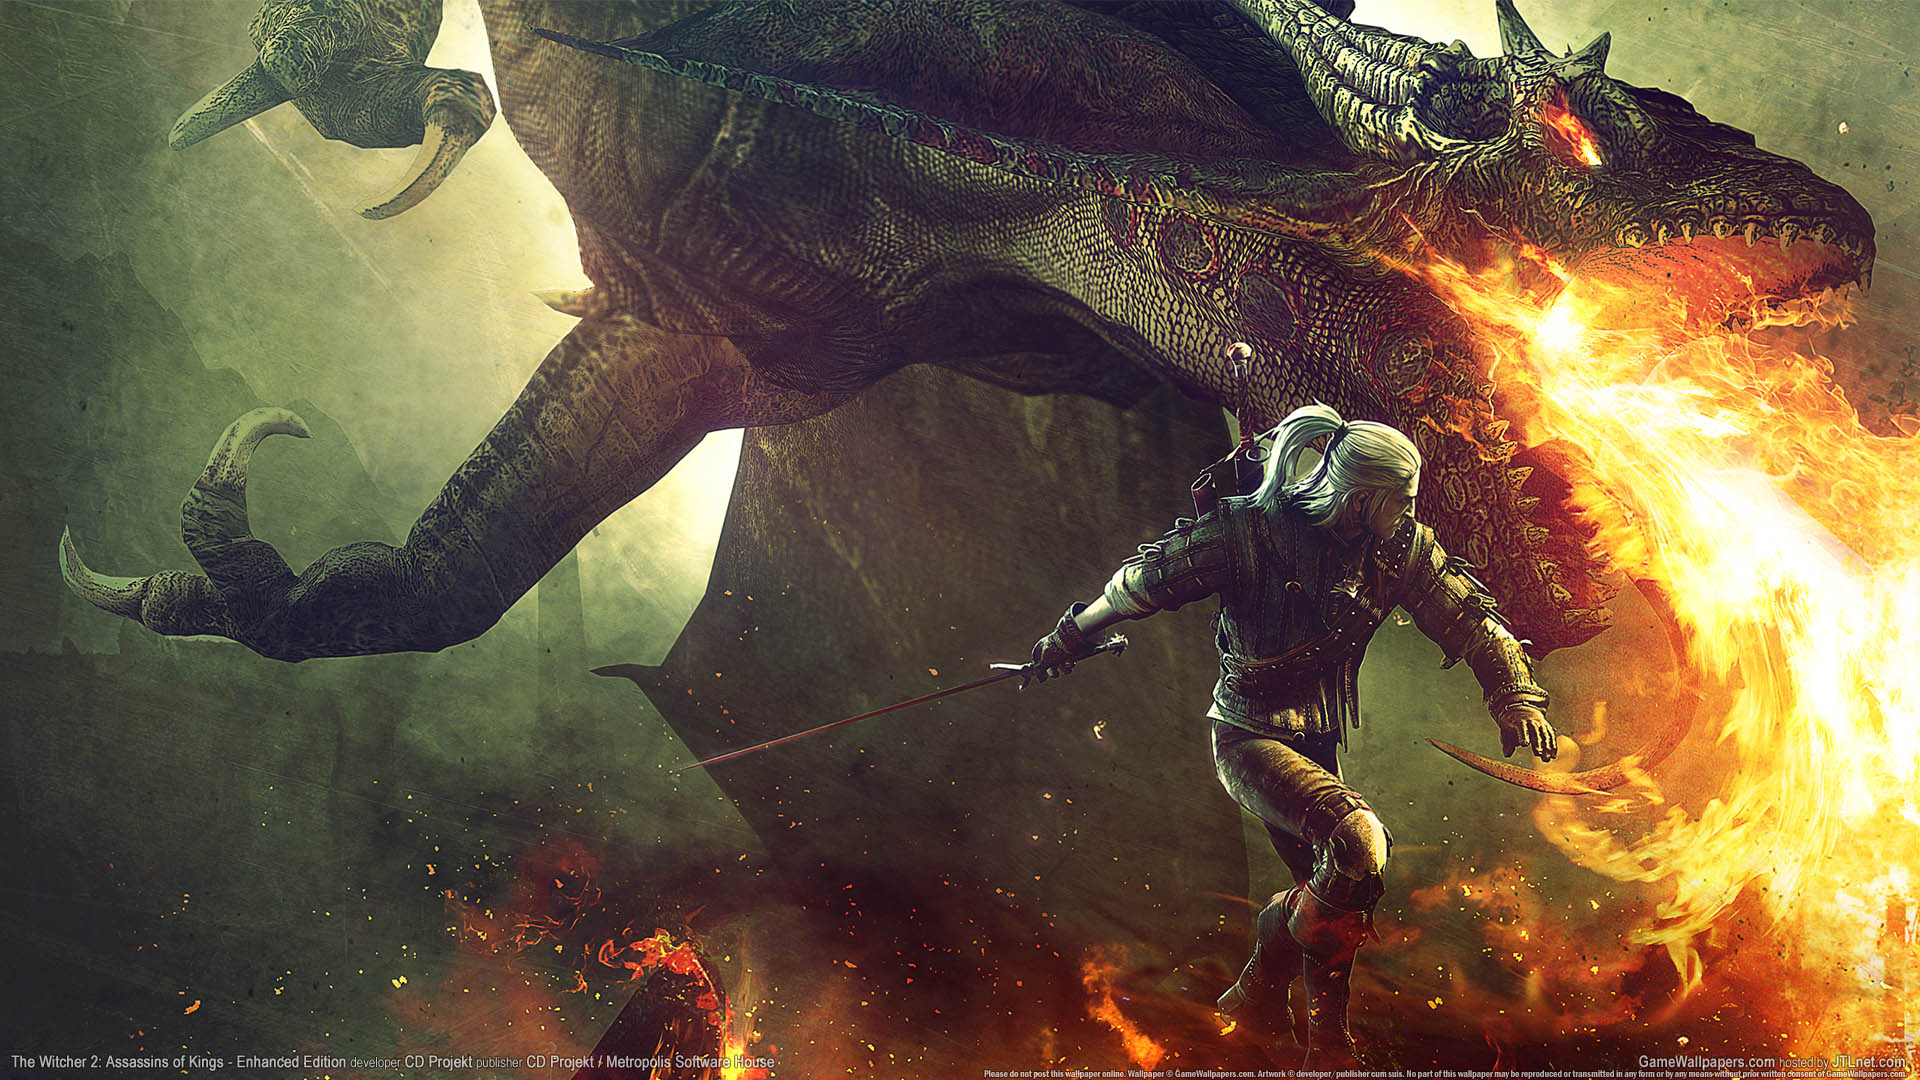 The Witcher 2 Assassins of Kings   Enhanced Edition wallpaper 01 1920x1080